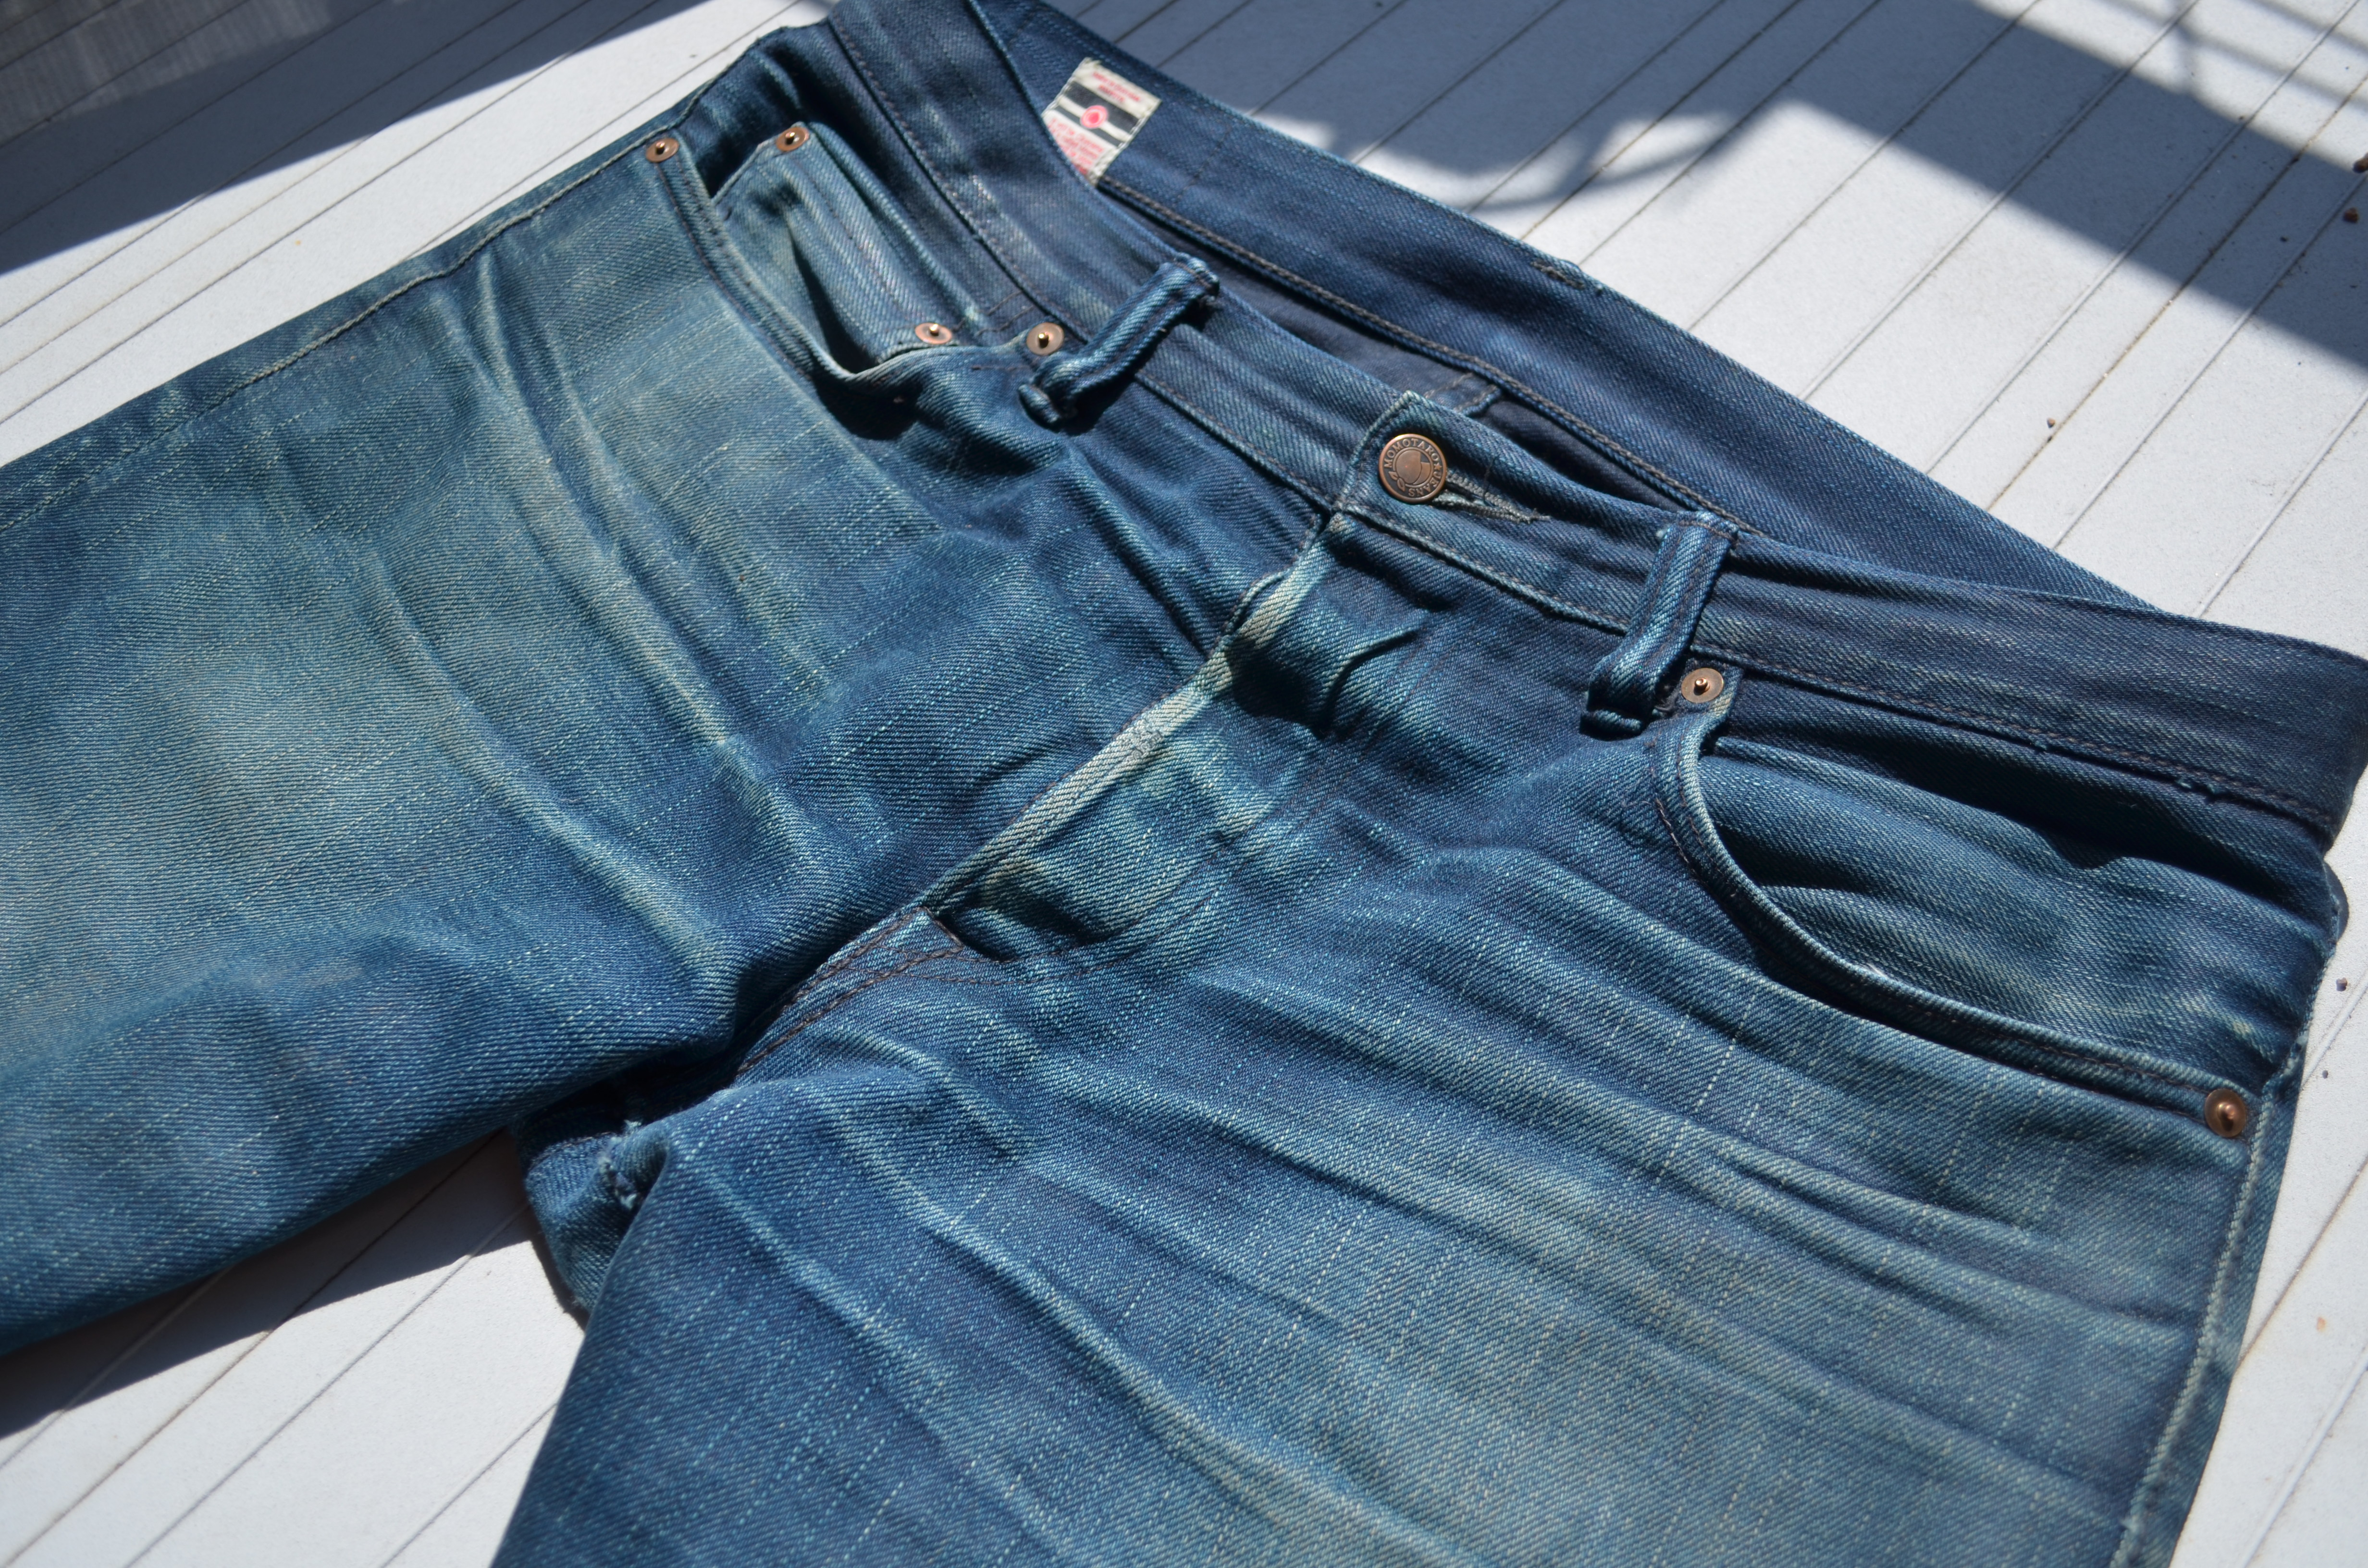 """The first pair of """"raw"""" denim jeans I saw that were not my father's Levi's  Orange tabs ($29.95 at Zellers back in 1980) were Helmut Lang's """"Narrow""""  and """" ..."""